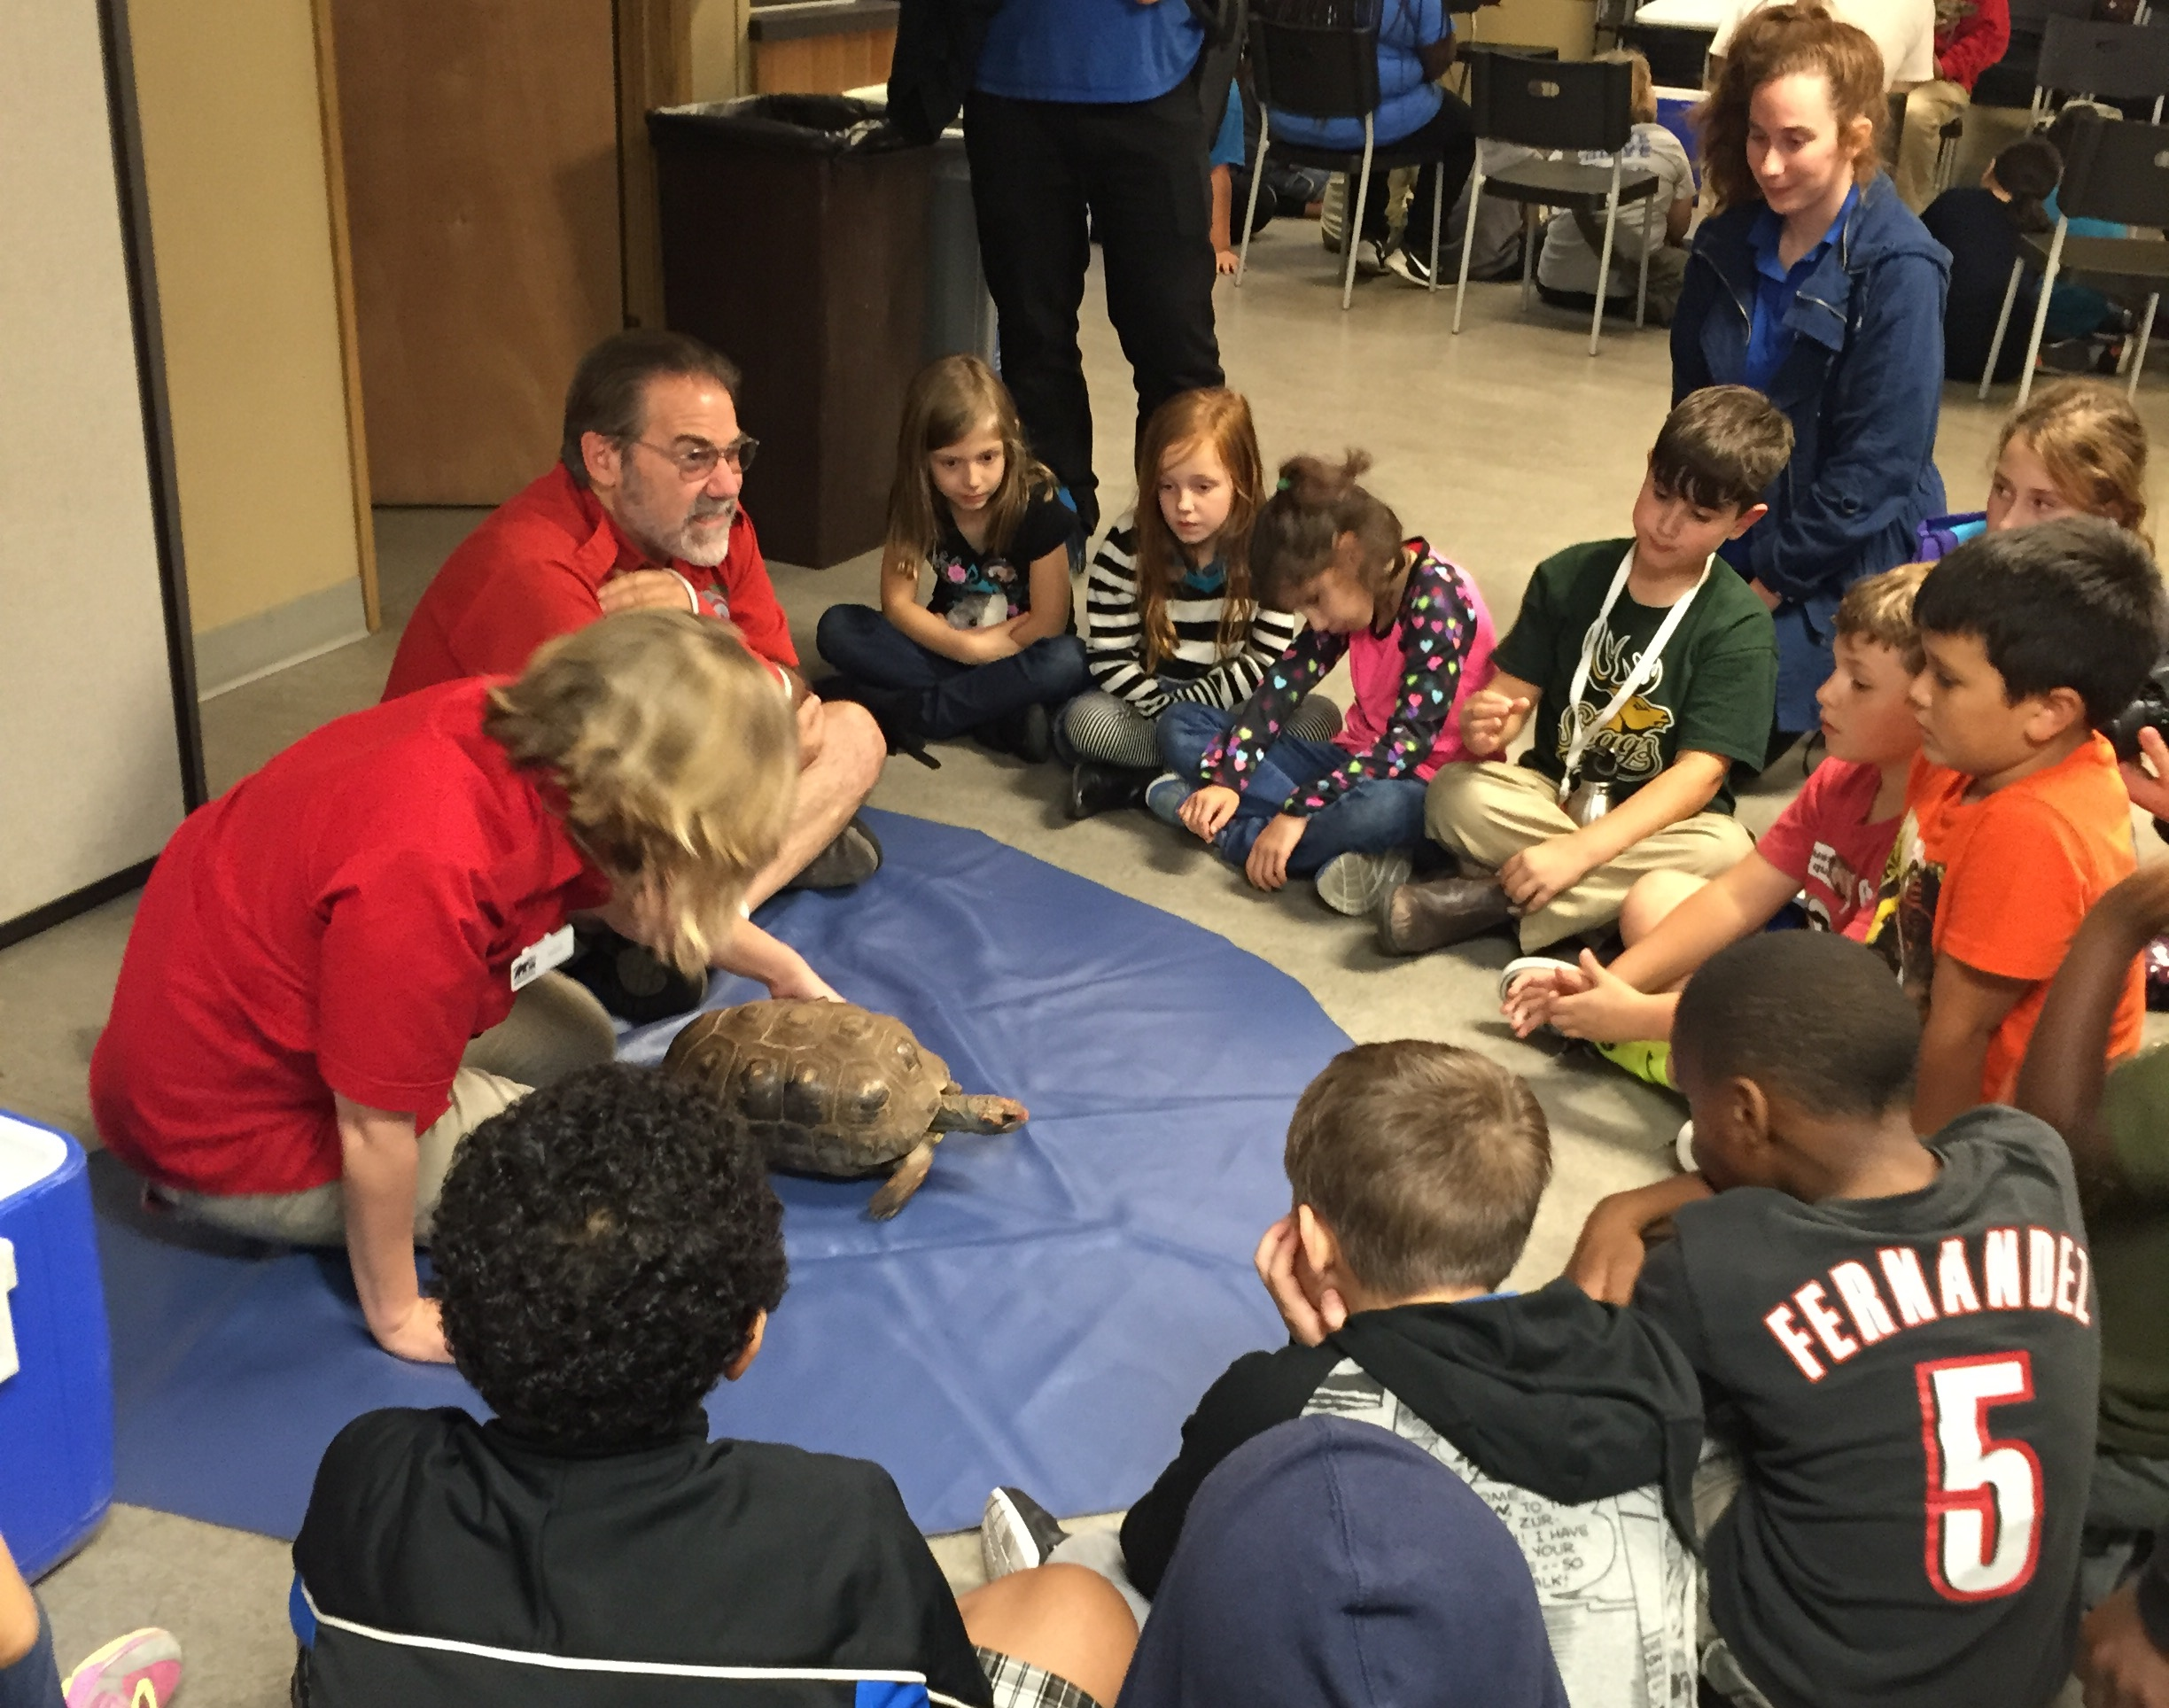 Members learn how to properly pet different reptiles.